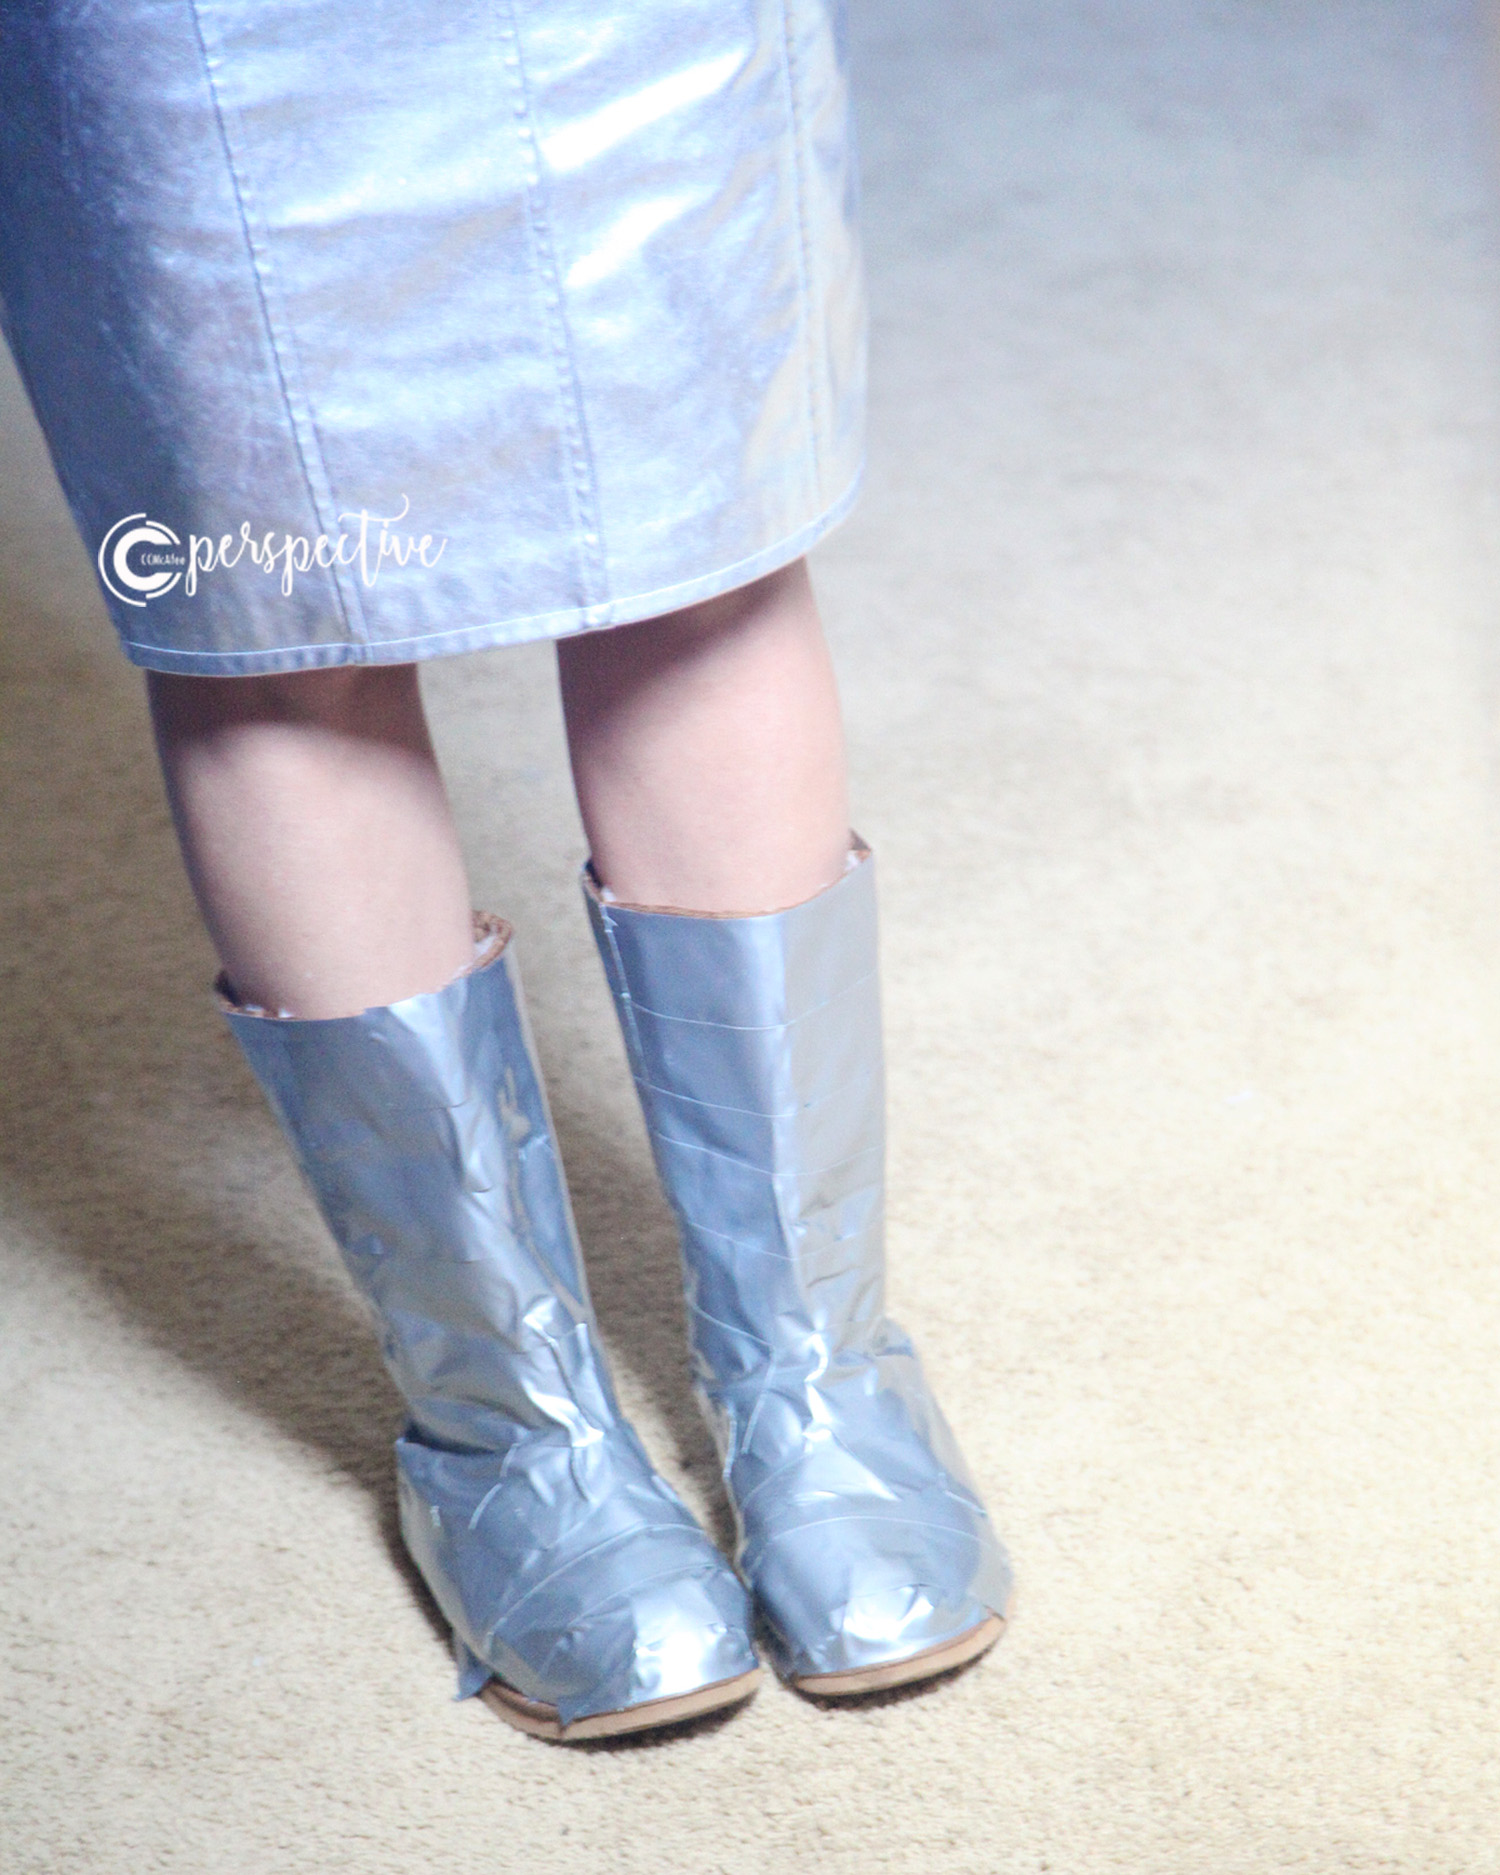 tin man boots using duct tape